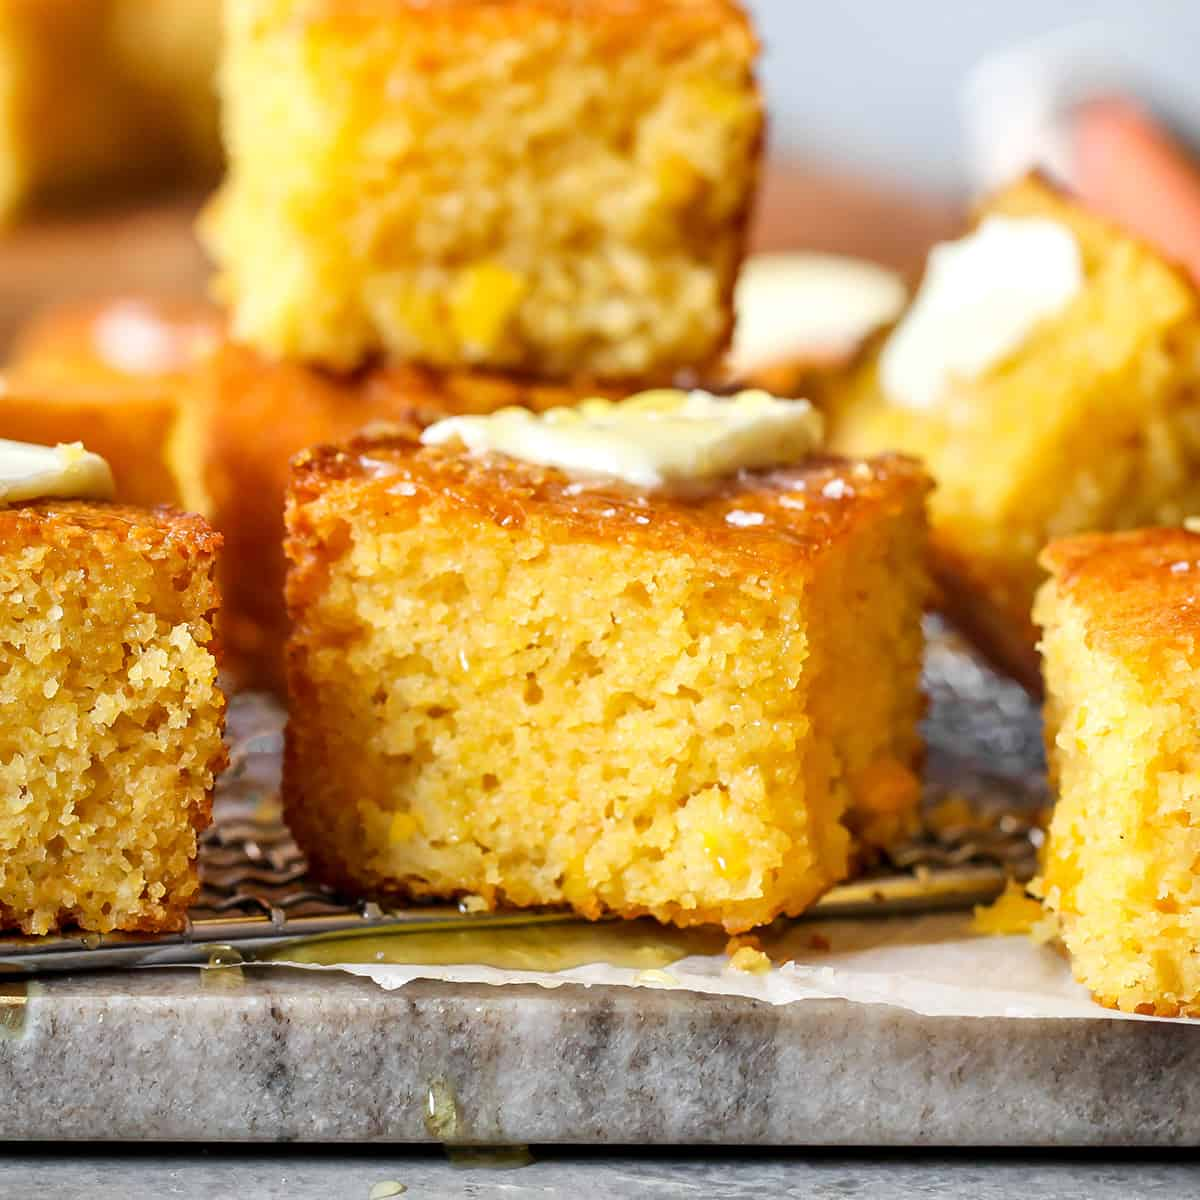 front view of slices of cornbread with melting butter on top